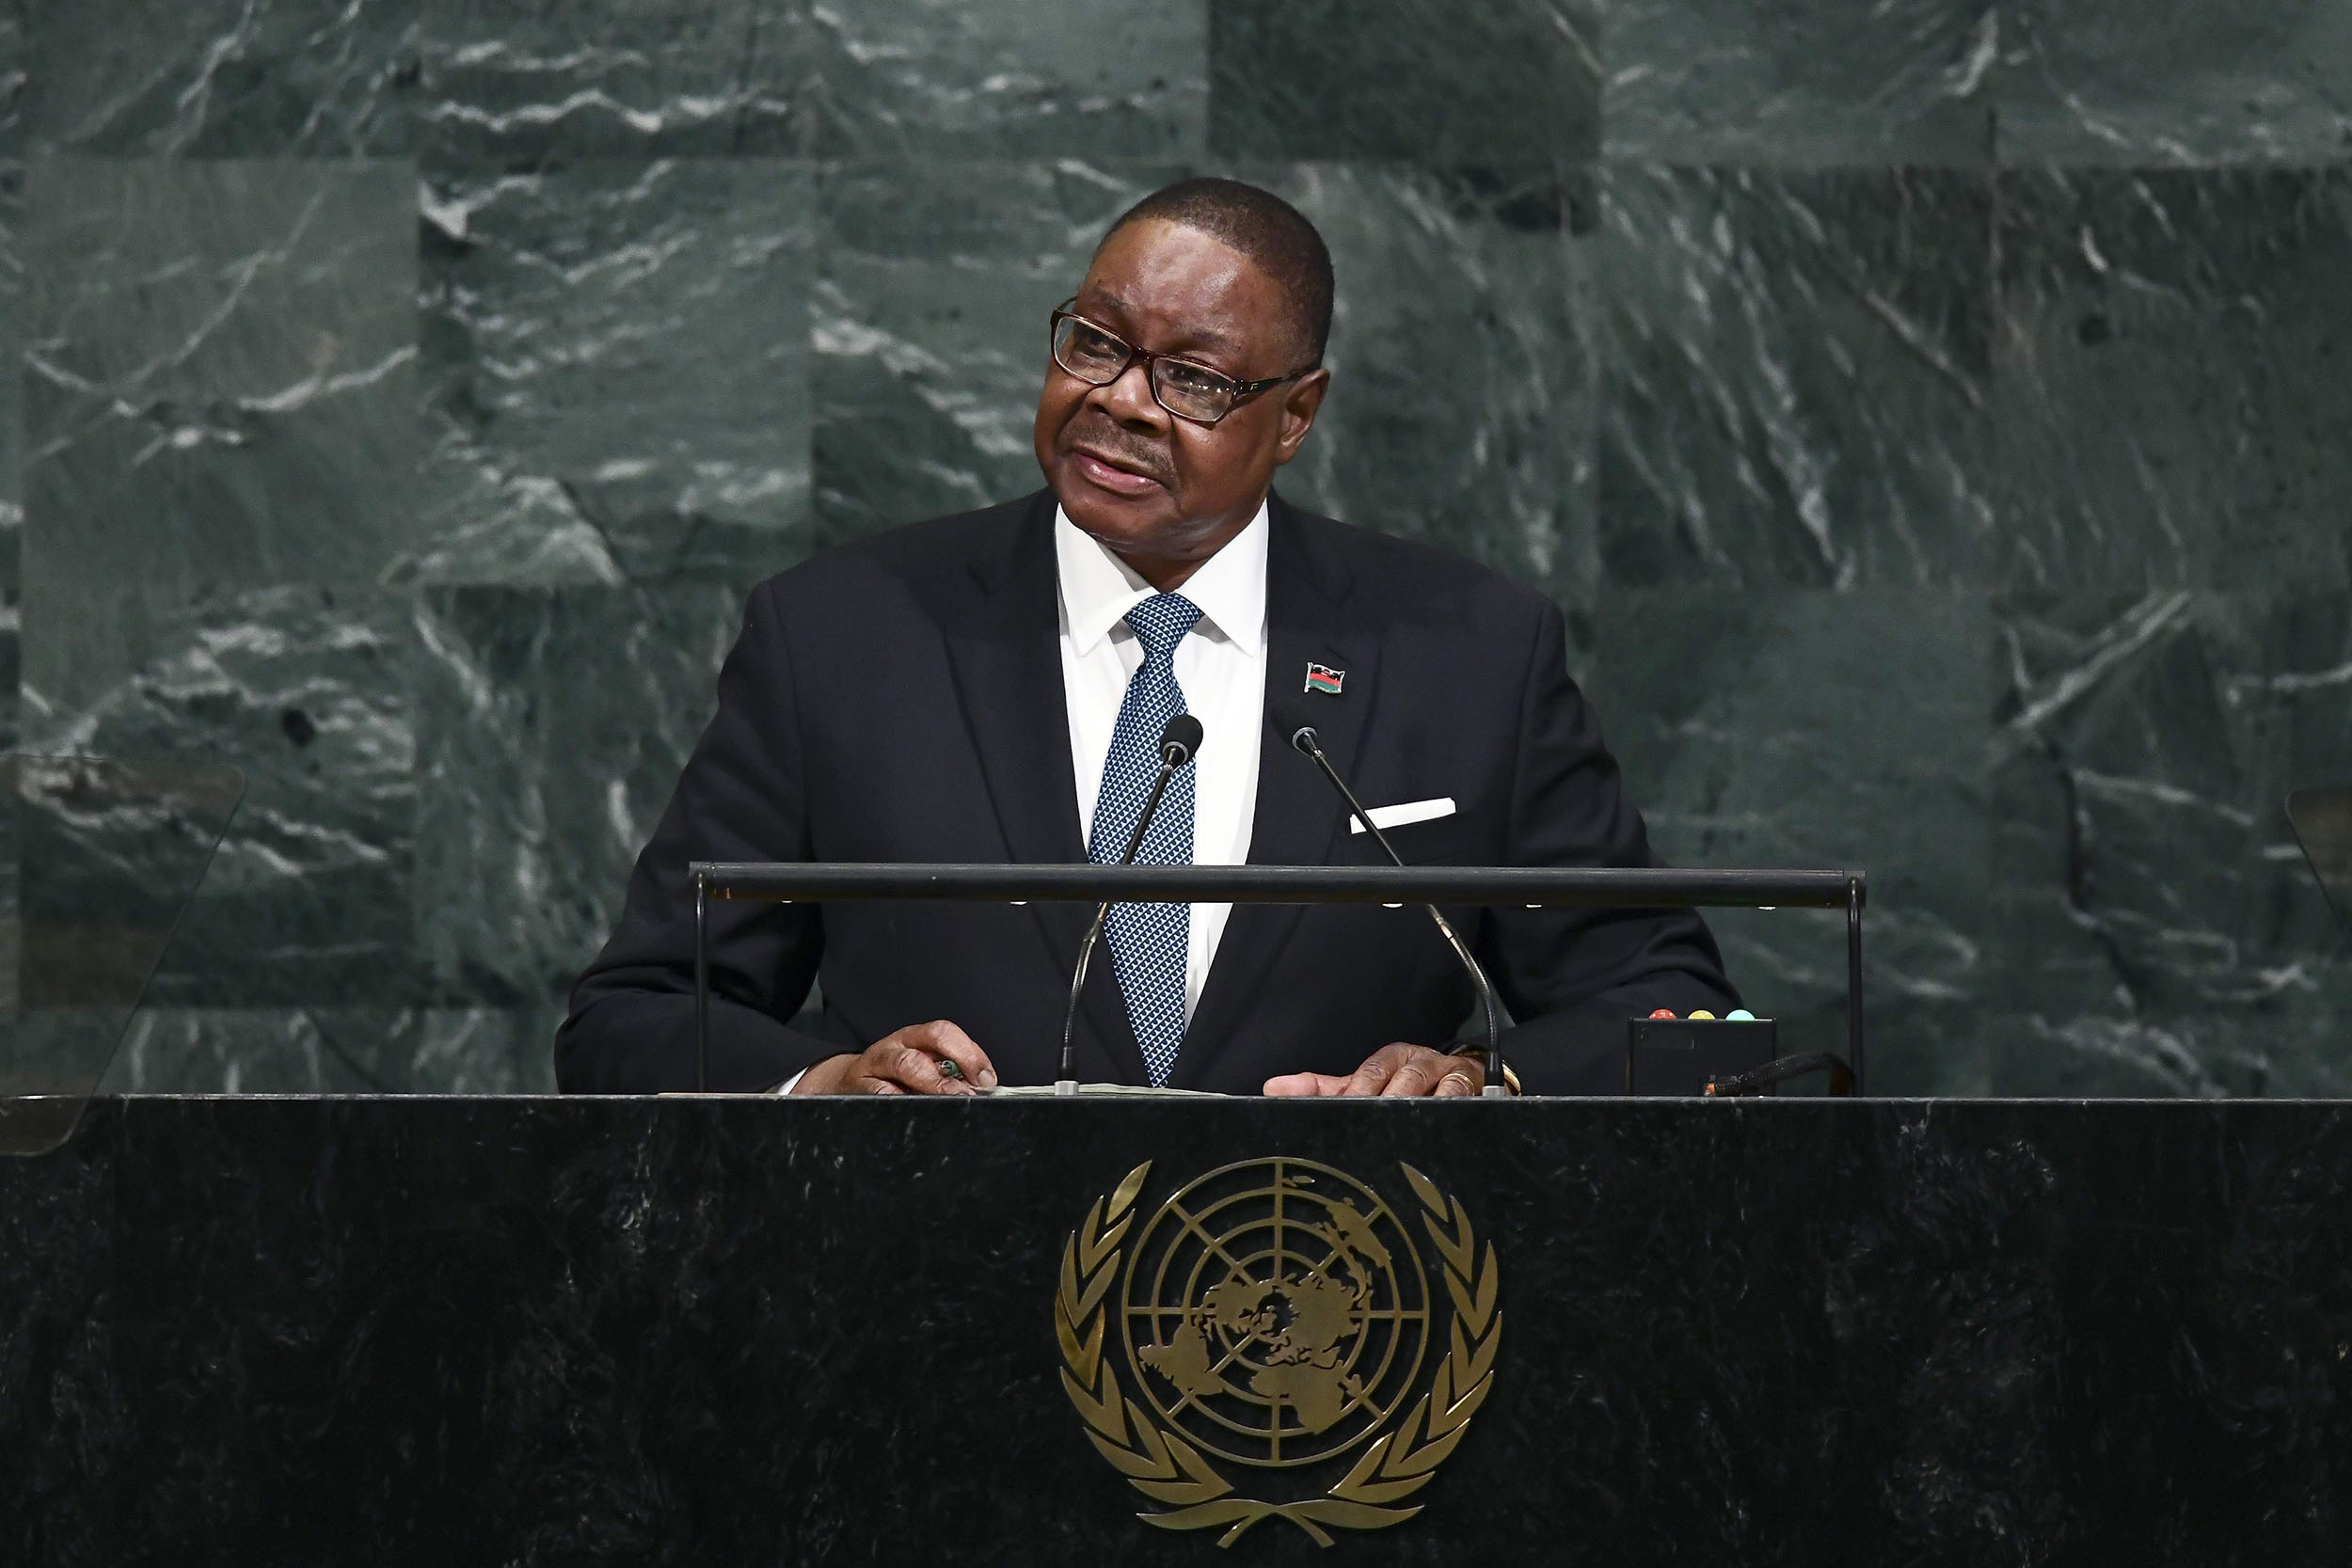 A vampire scare prompts U.N. pullout from parts of Malawi